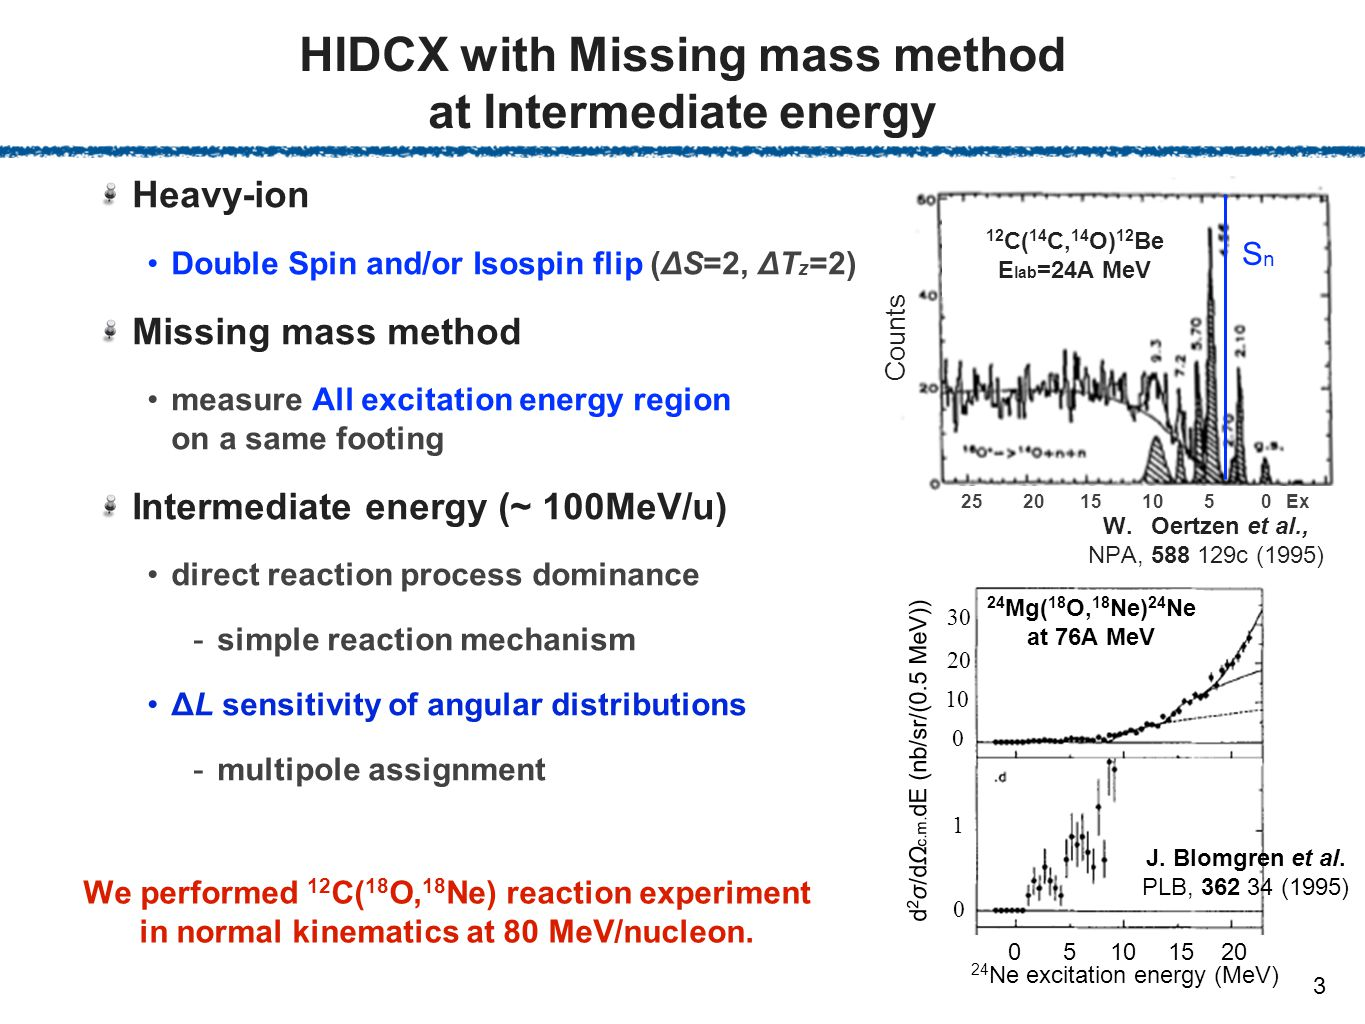 HIDCX with Missing mass method at Intermediate energy Heavy-ion Double Spin and/or Isospin flip (ΔS=2, ΔT z =2) Missing mass method measure All excitation energy region on a same footing Intermediate energy (~ 100MeV/u) direct reaction process dominance -simple reaction mechanism ΔL sensitivity of angular distributions -multipole assignment 3 Counts 25 20 15 10 5 0 Ex 12 C( 14 C, 14 O) 12 Be E lab =24A MeV W.